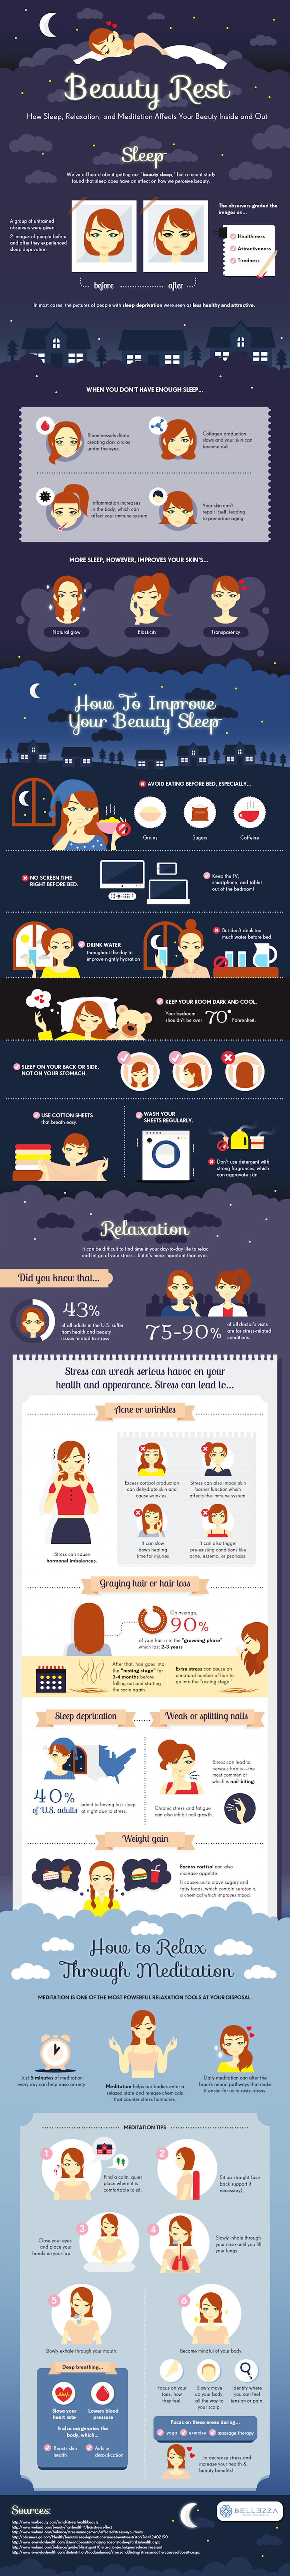 Beauty Benefits of a Good Night Sleep Infographic